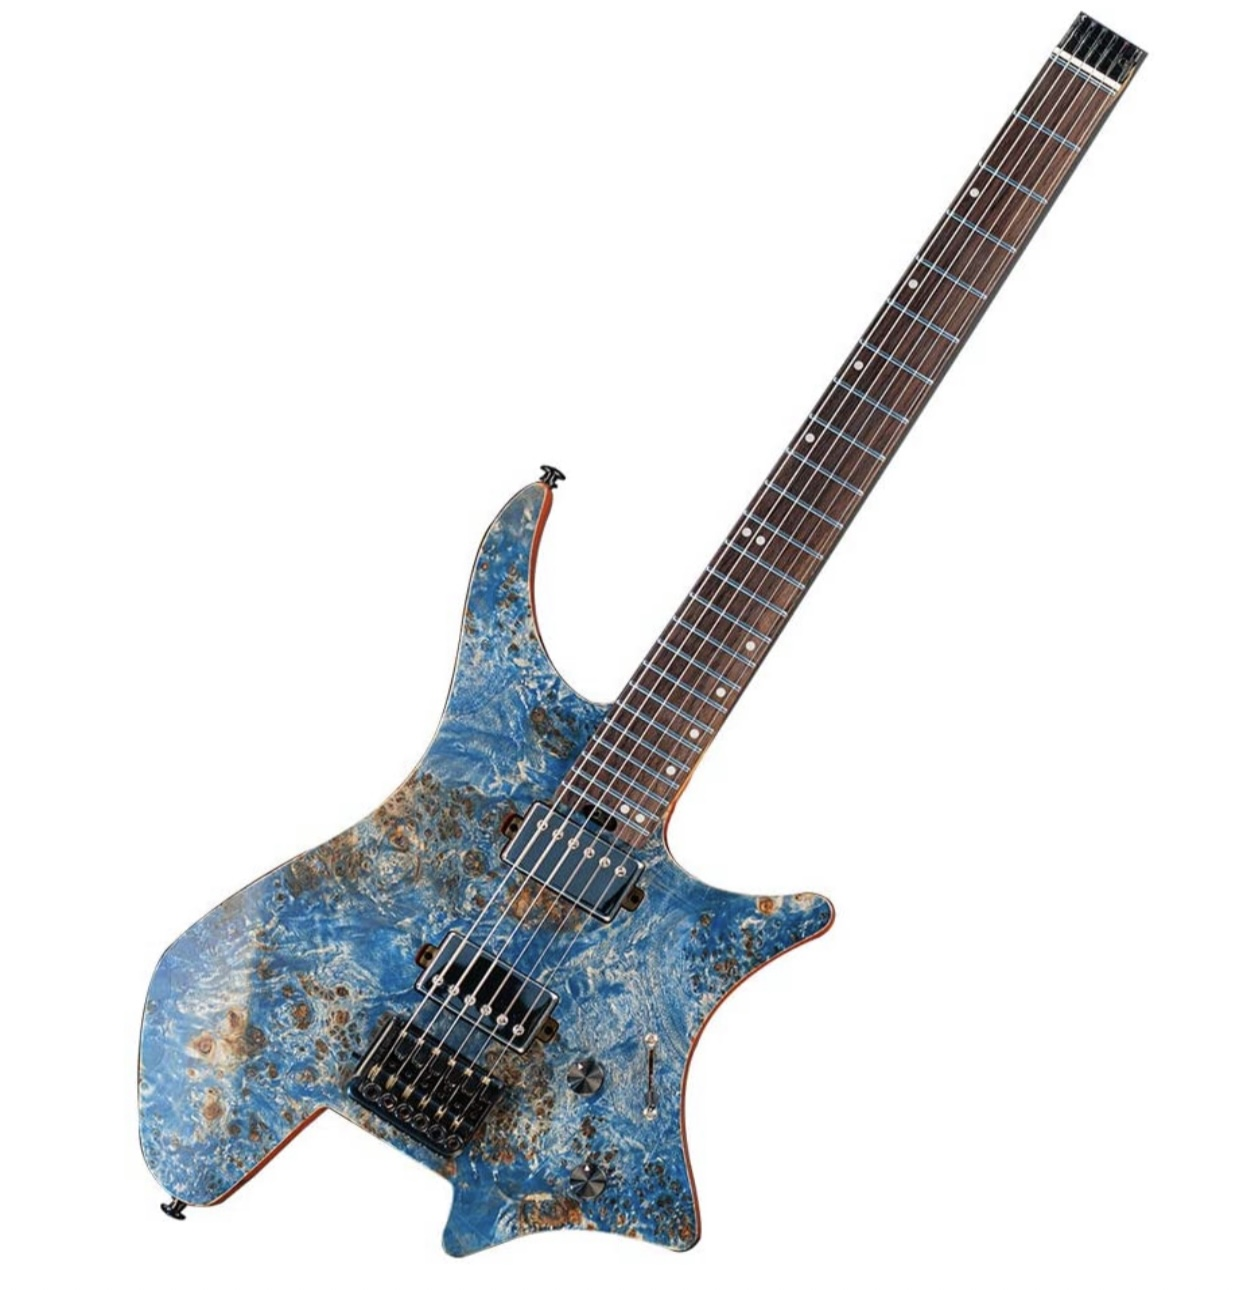 """I bought a cheap """"knock-off"""" guitar. Was it worth it?"""